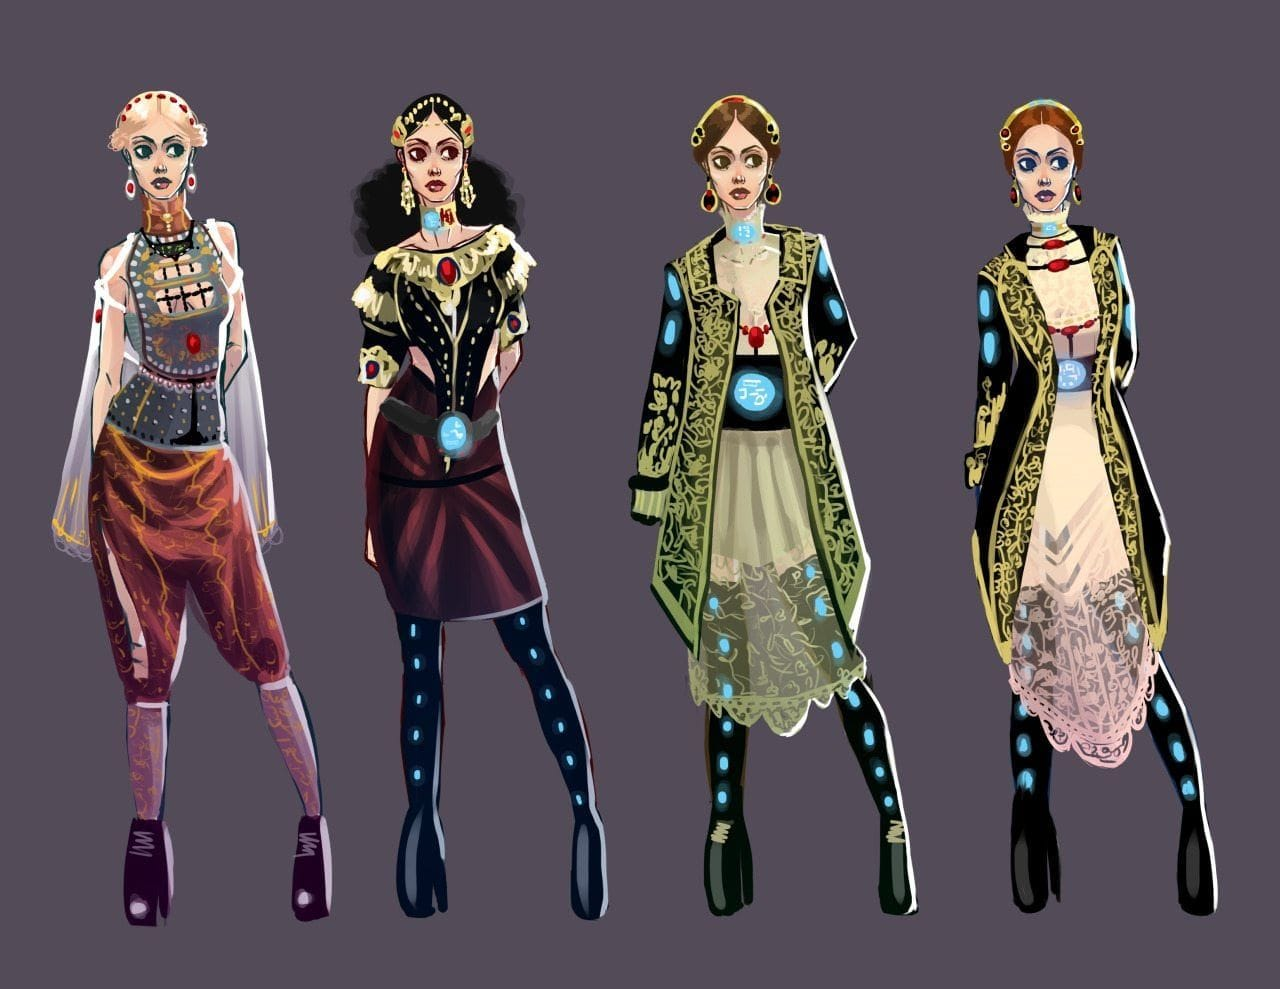 Character designs by Melissa Lodu